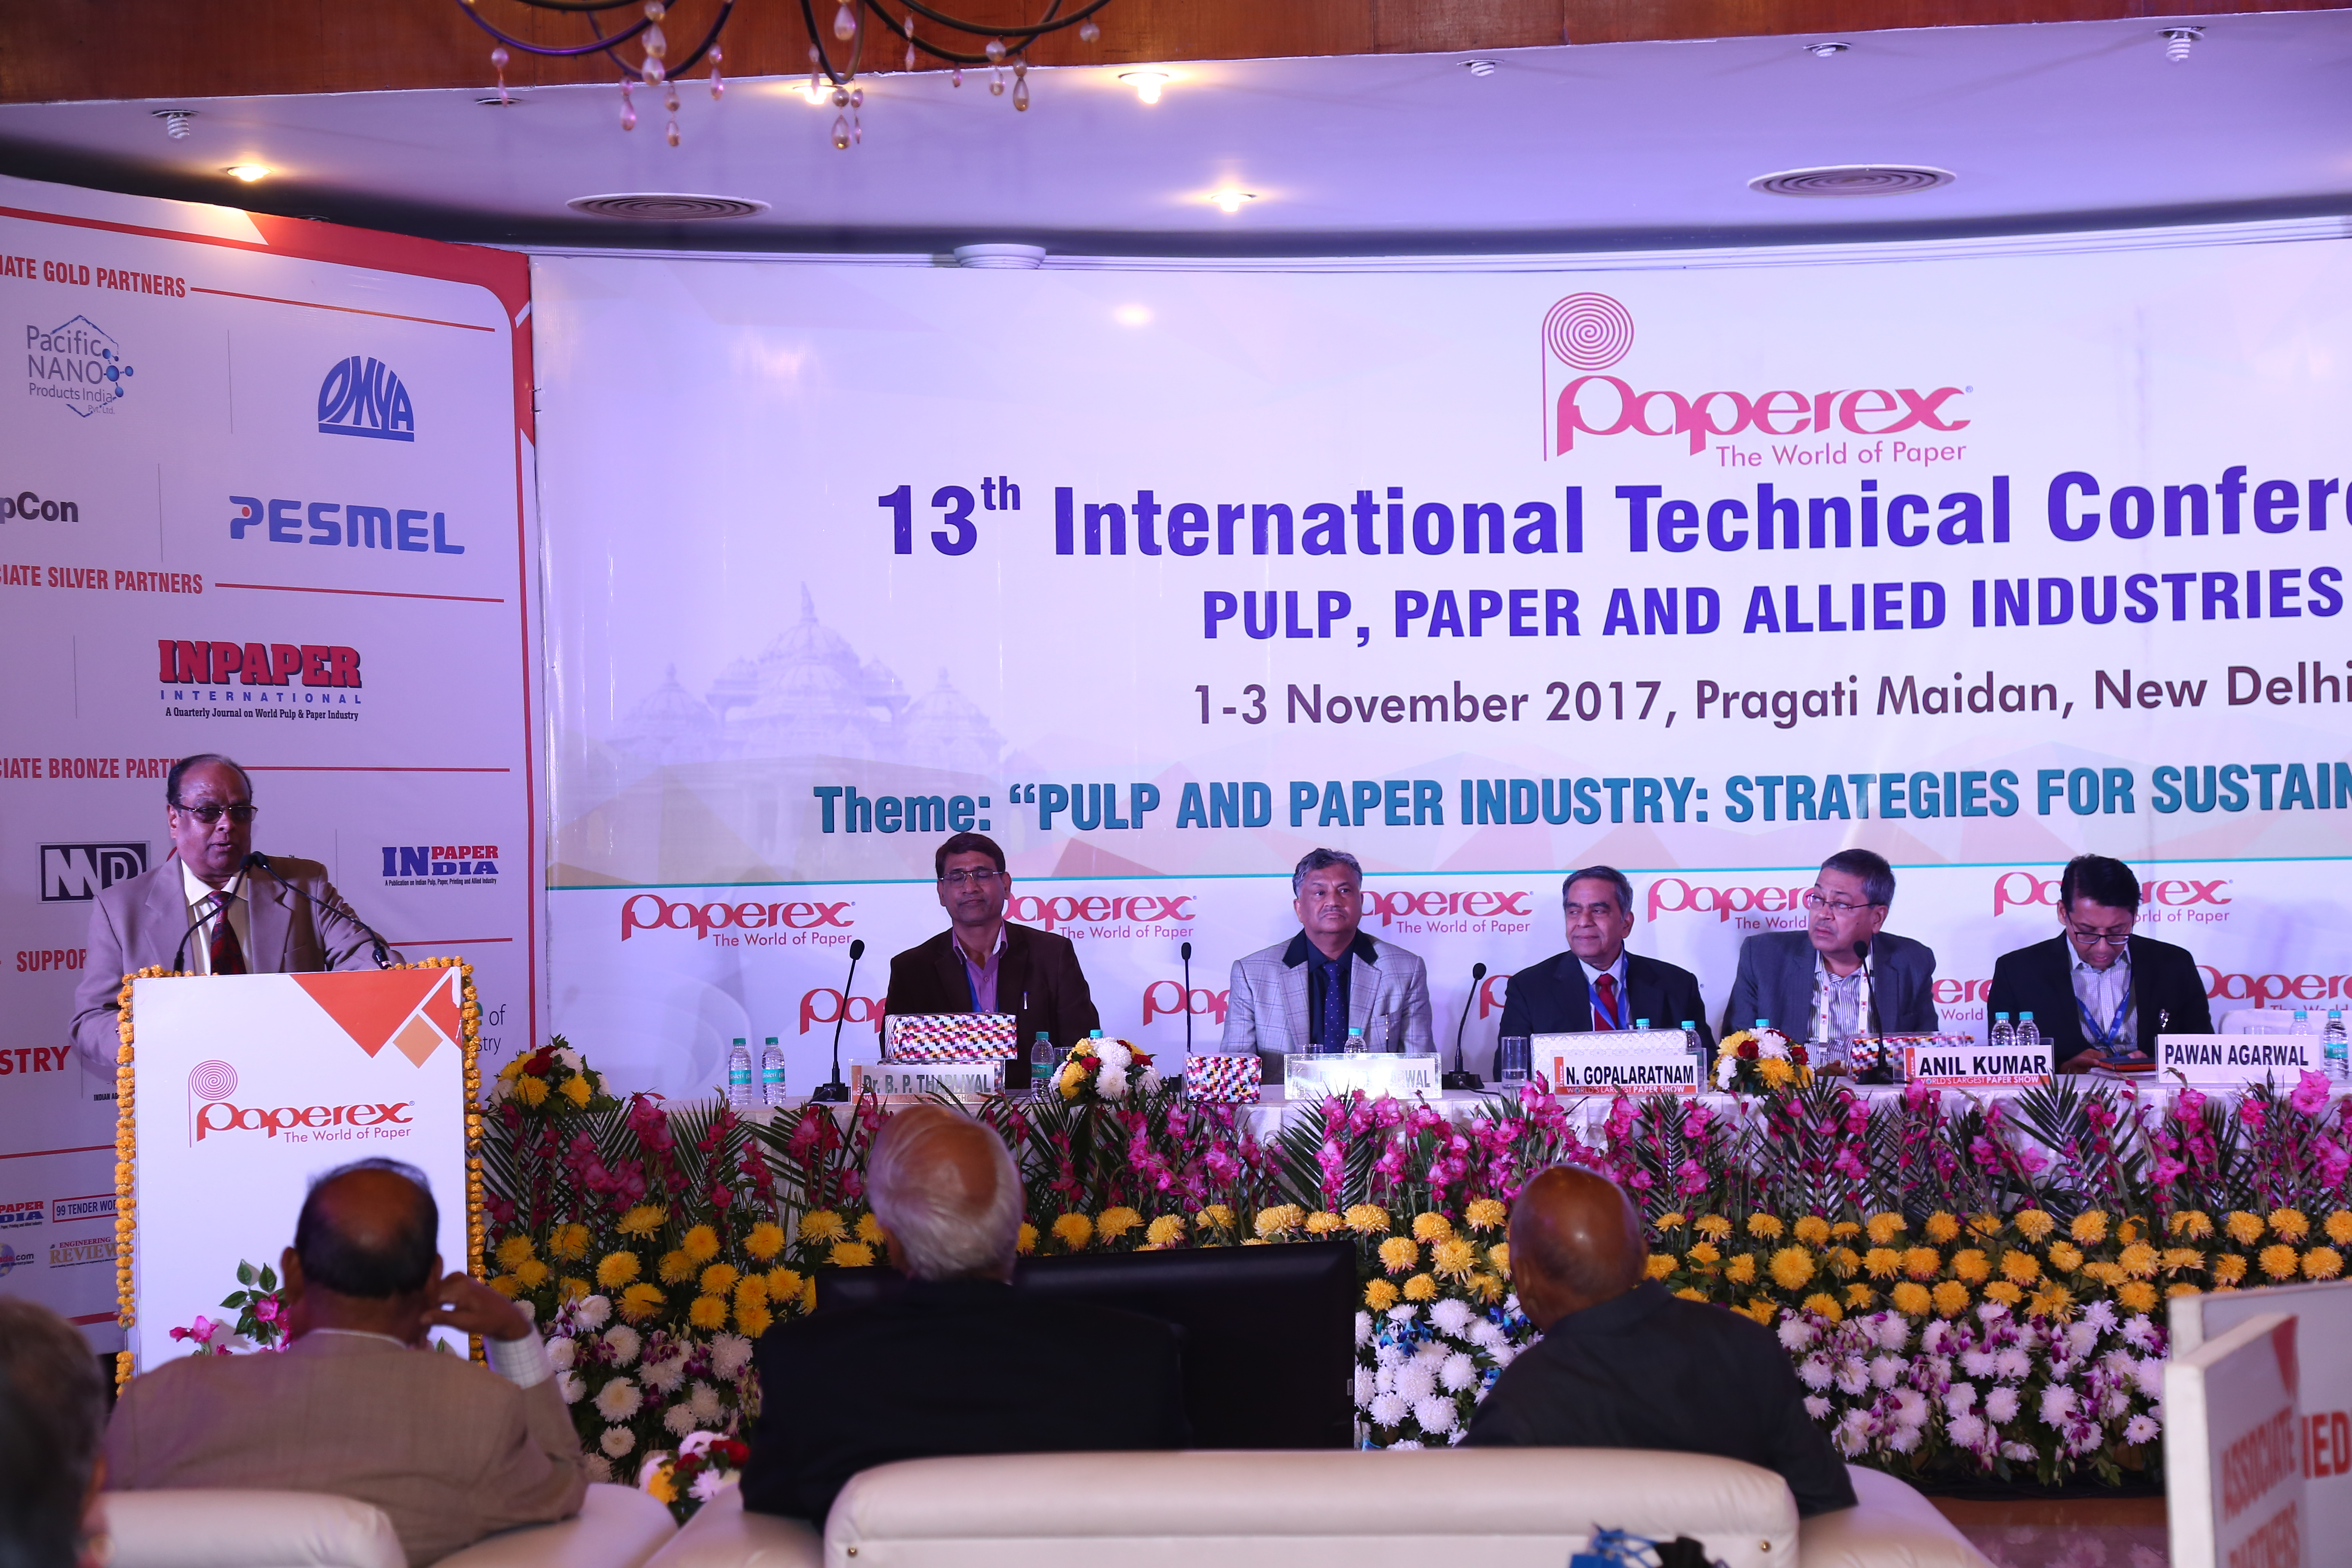 A session during the International Technical Conference